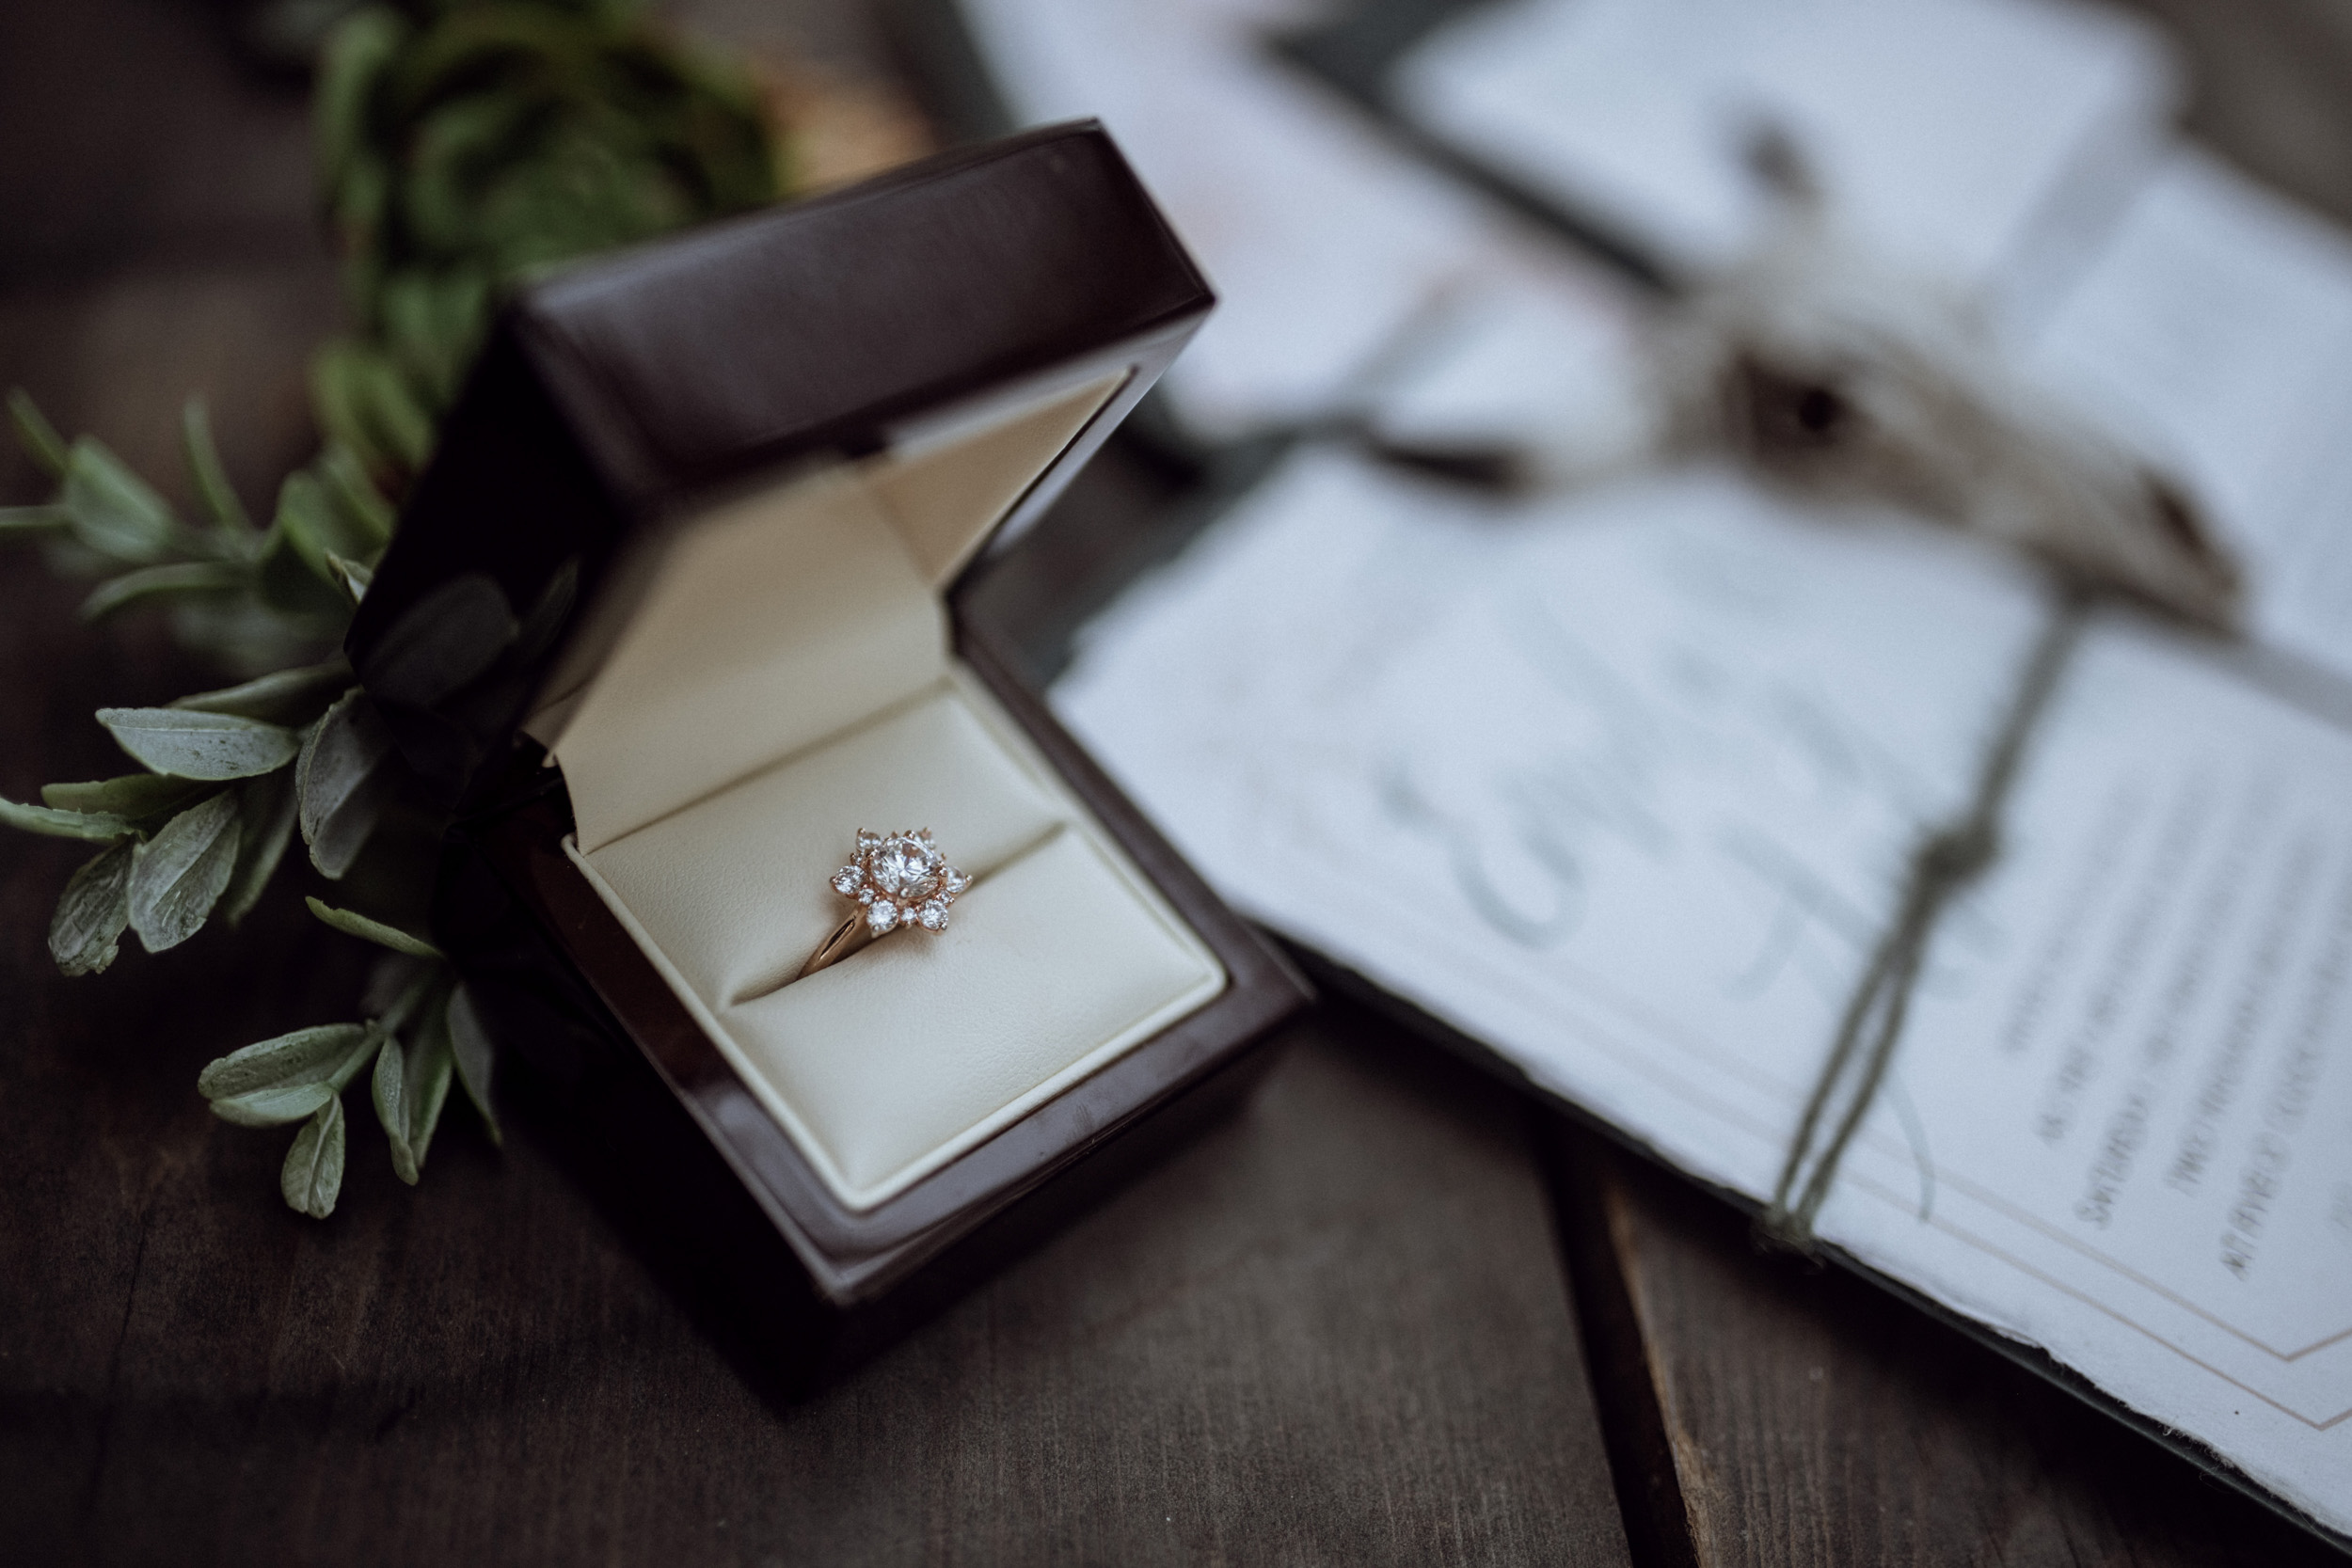 rose gold wedding ring on wooden table with stationary